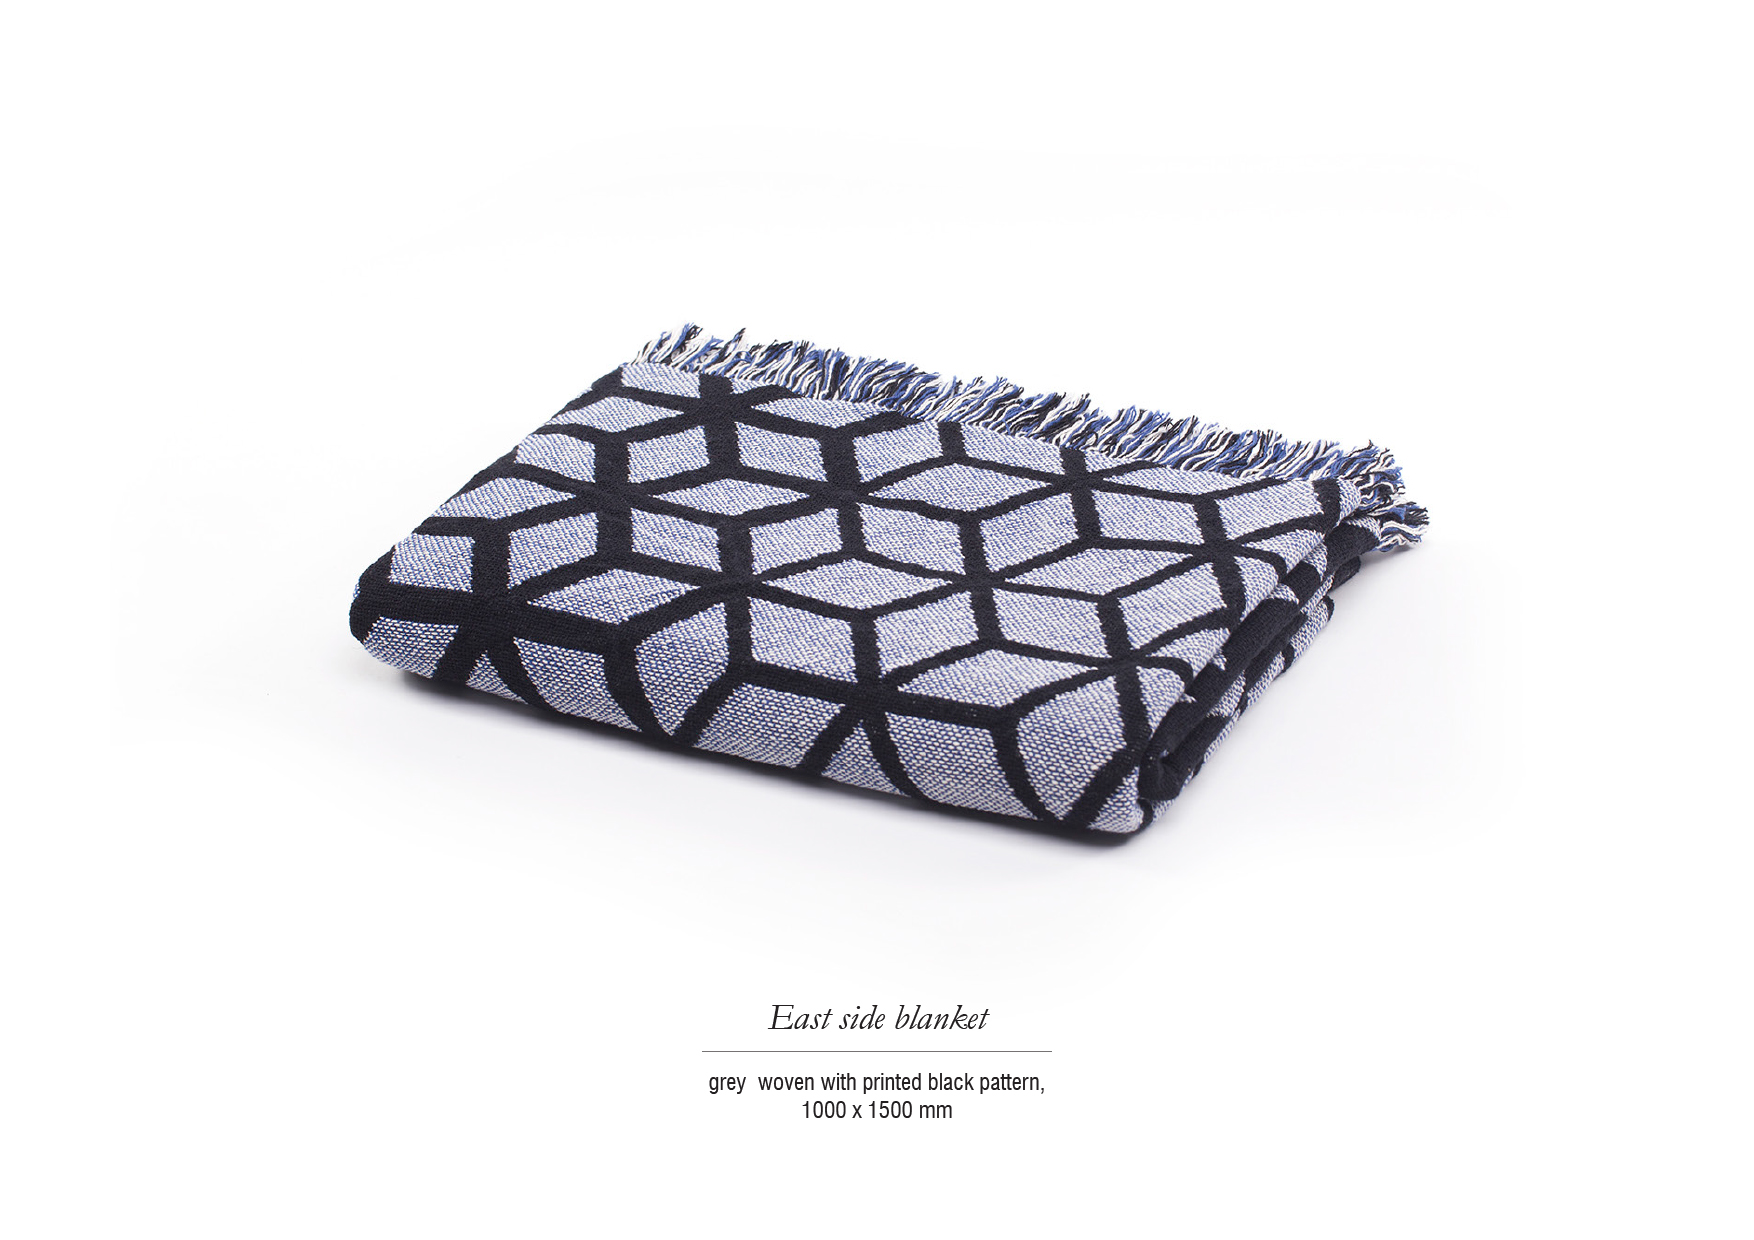 Amenity bags catalogue 2016_SHcollection_V6 119.jpg